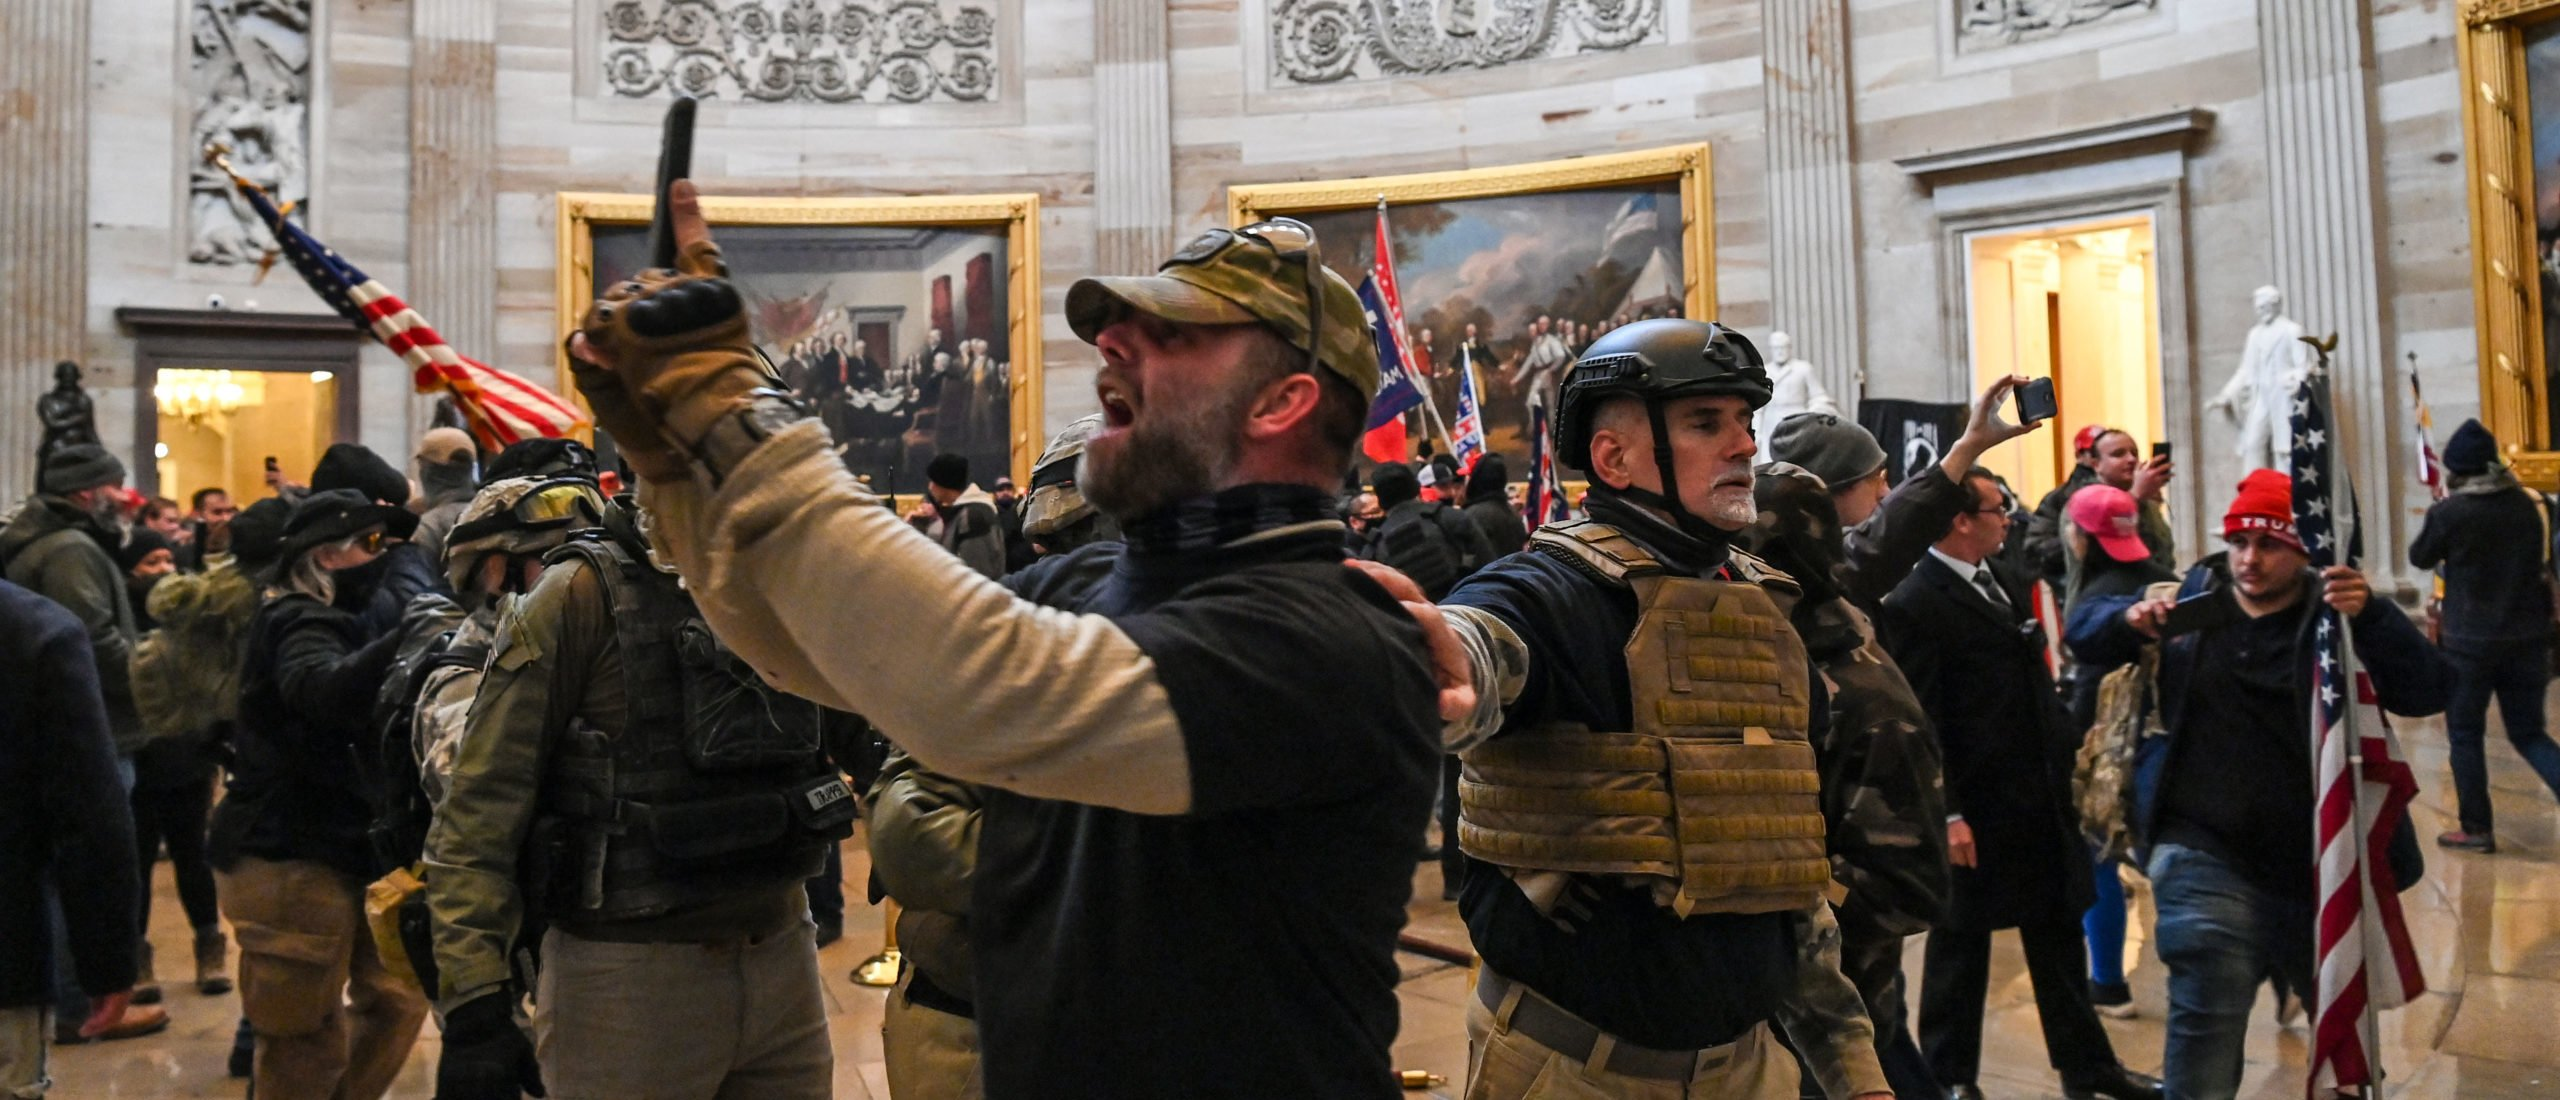 Rioters enter the Capitol Rotunda on Jan. 6 in Washington D.C. (Saul Loeb/AFP via Getty Images)